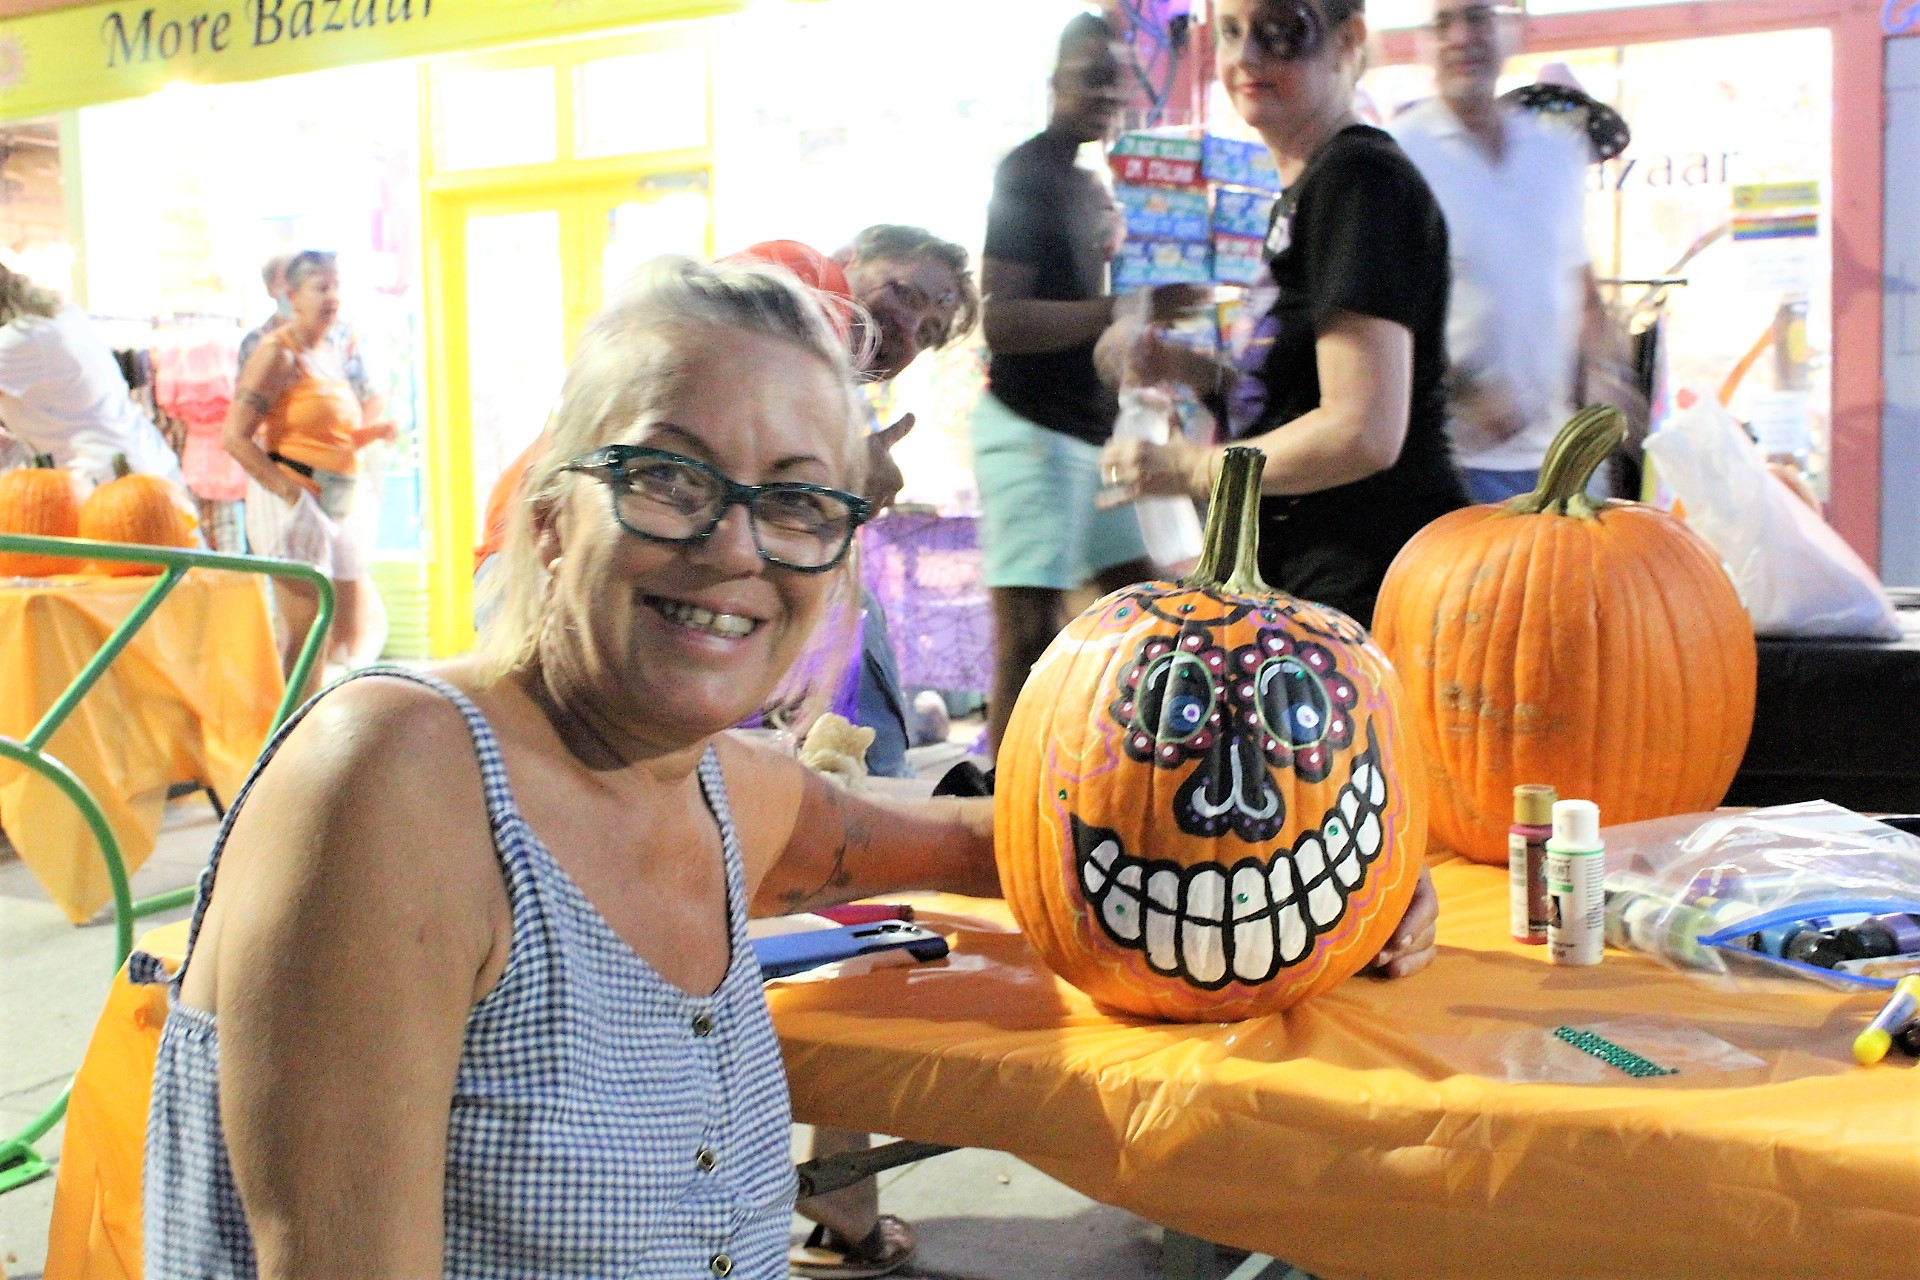 A woman smiles at the camera next to a painted Halloween pumpkin.